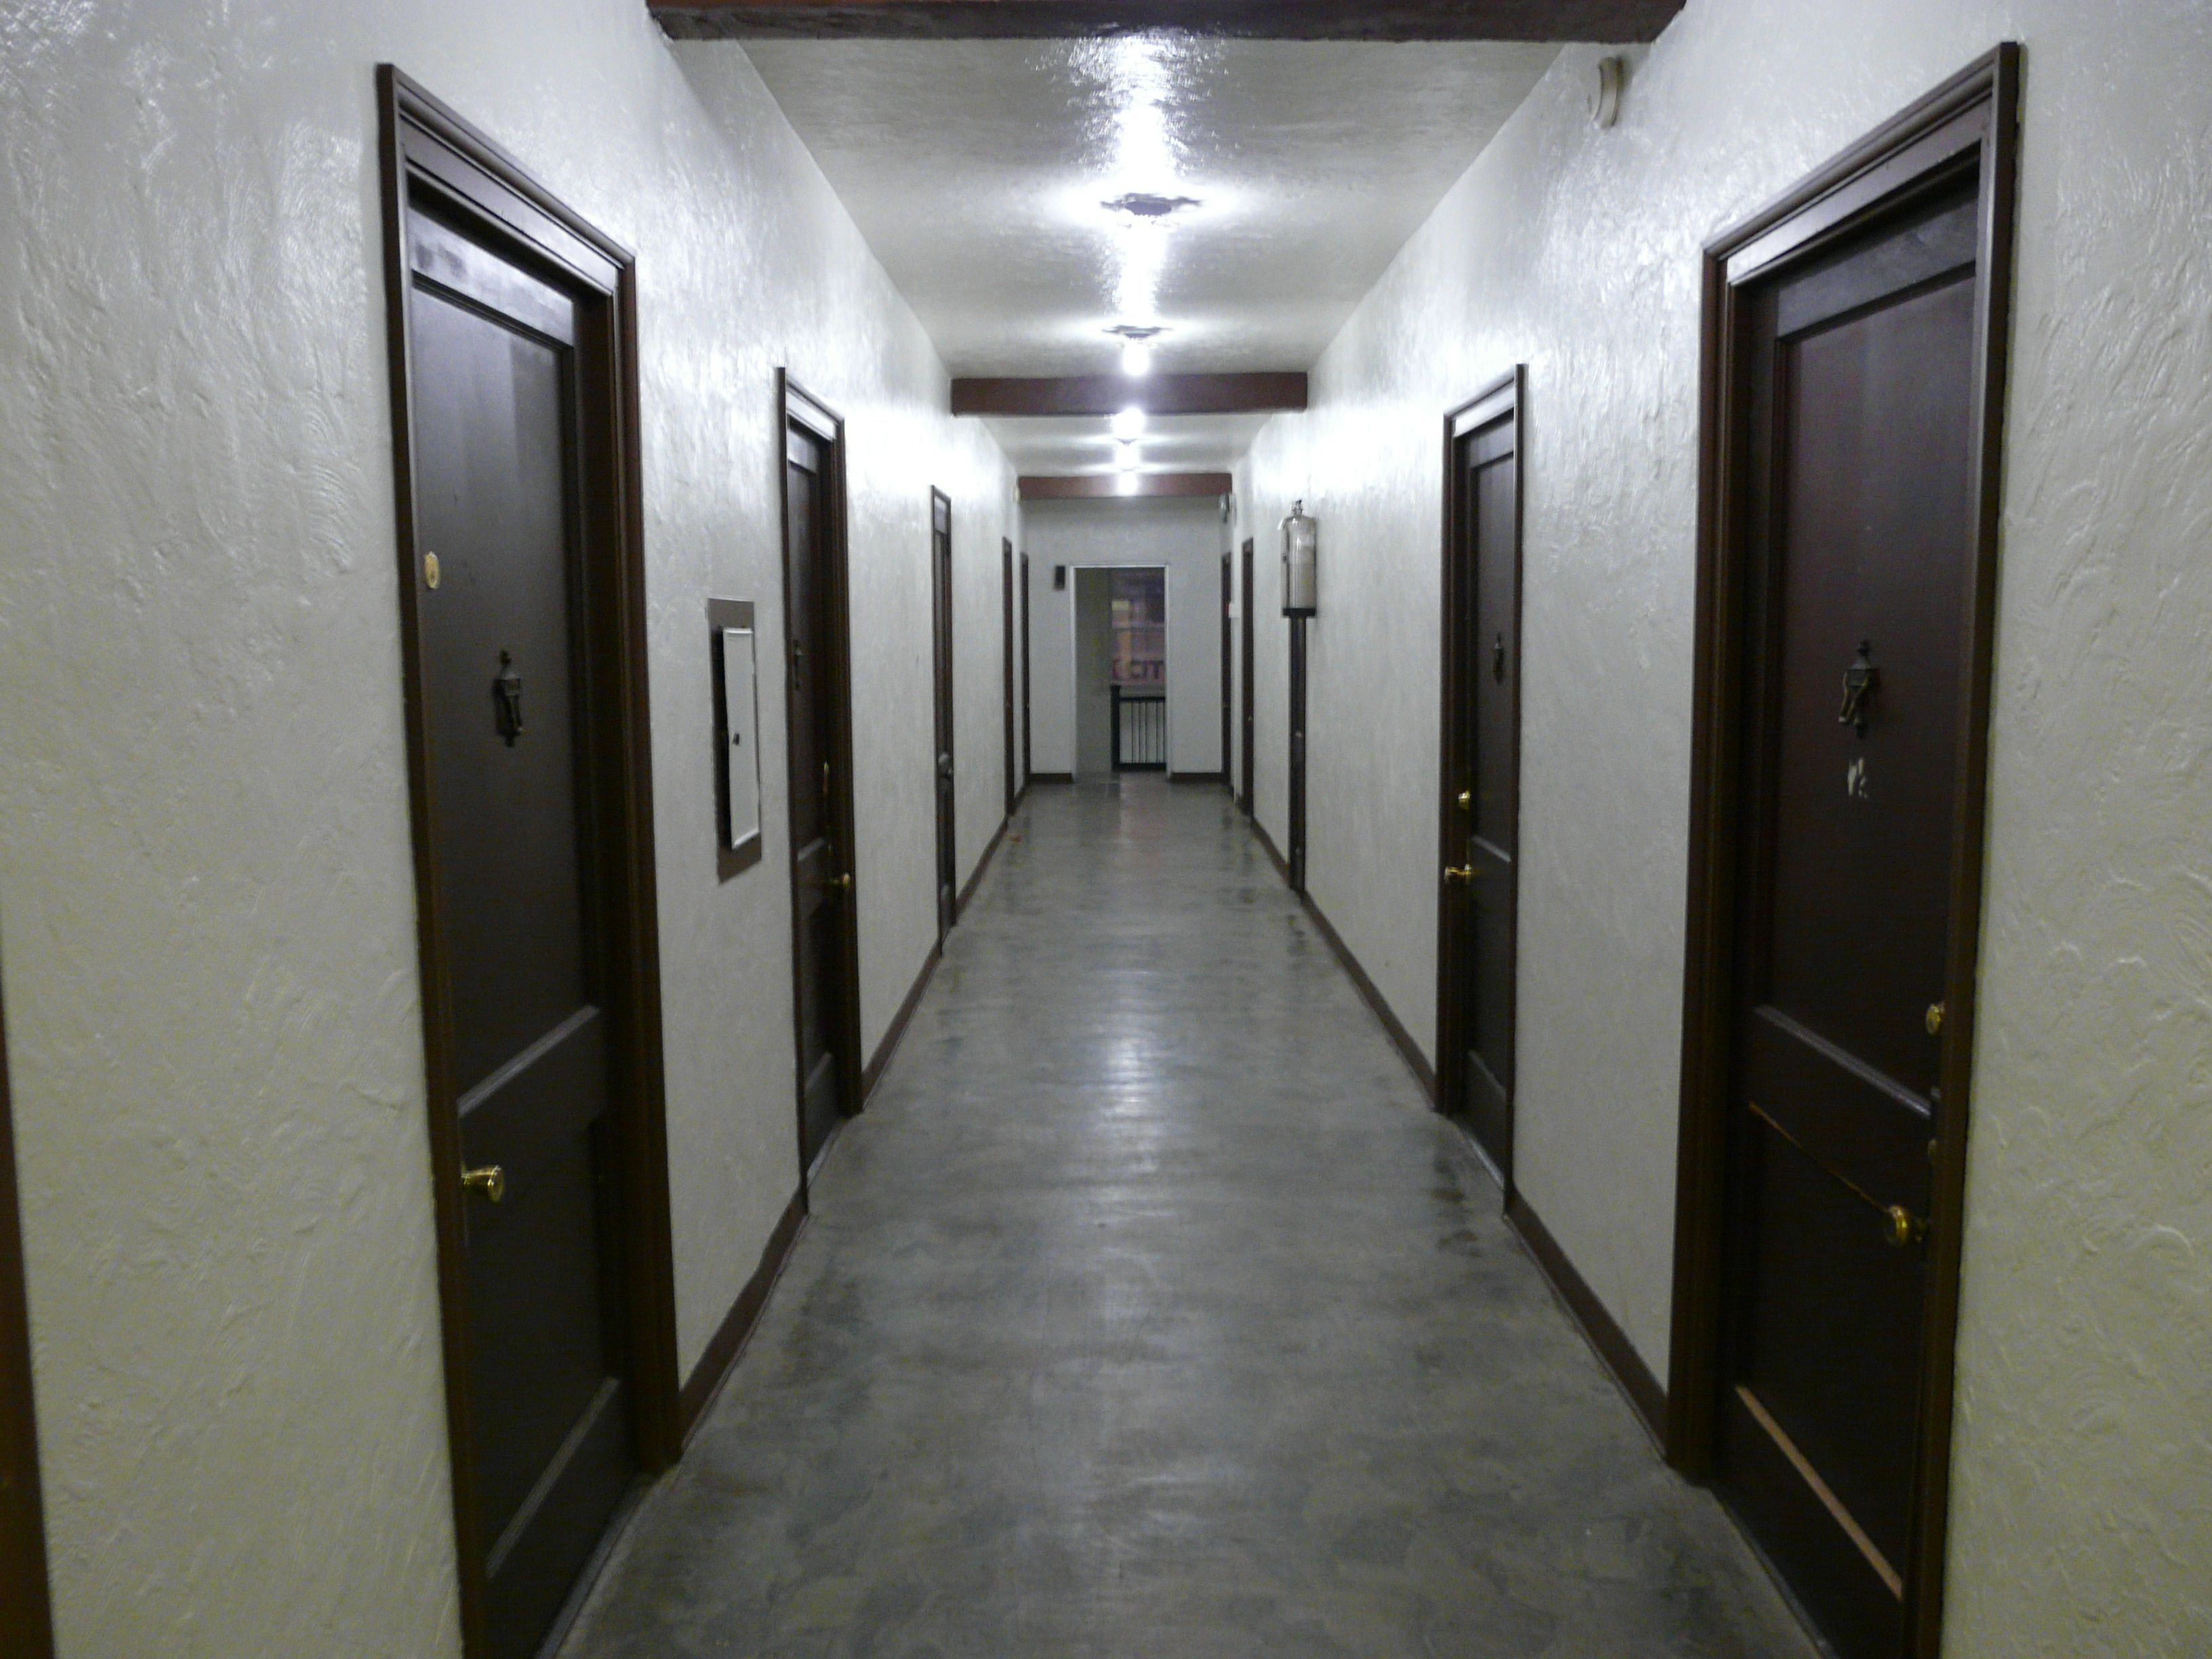 Corridor A Passage Into Which Several Rooms Or Apartments